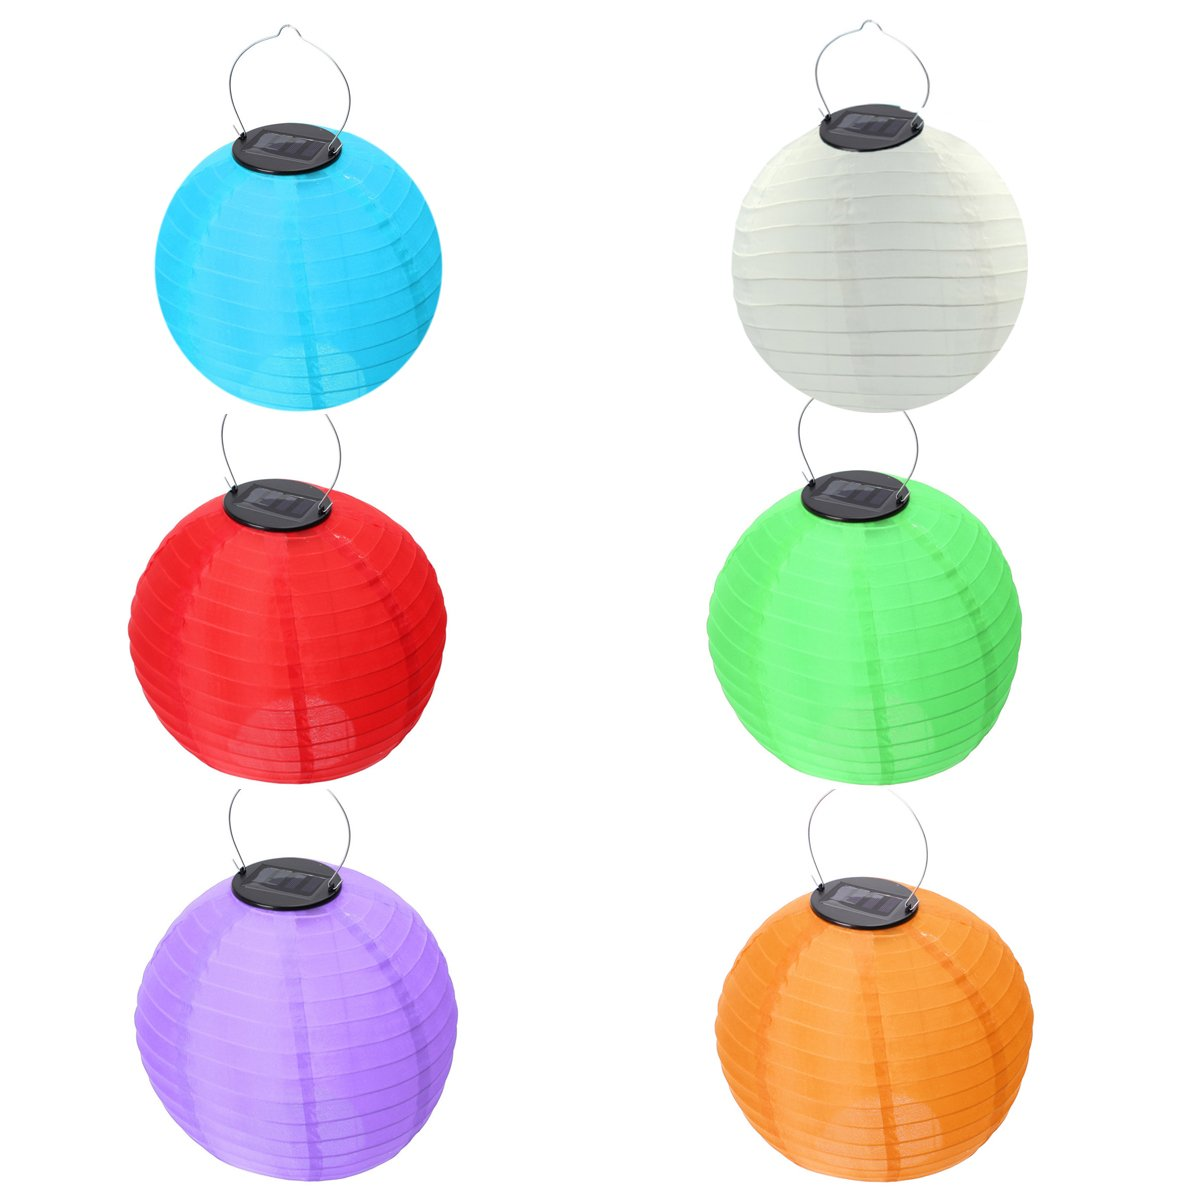 HKBAYI Pack of 6 10'' 25cm Solar Powered LED Light Chinese Nylon Fabric Lantern Lamp Lighting for Garden Outdoors more color choice - no Batteries or Plug Needed (Multi-colored)